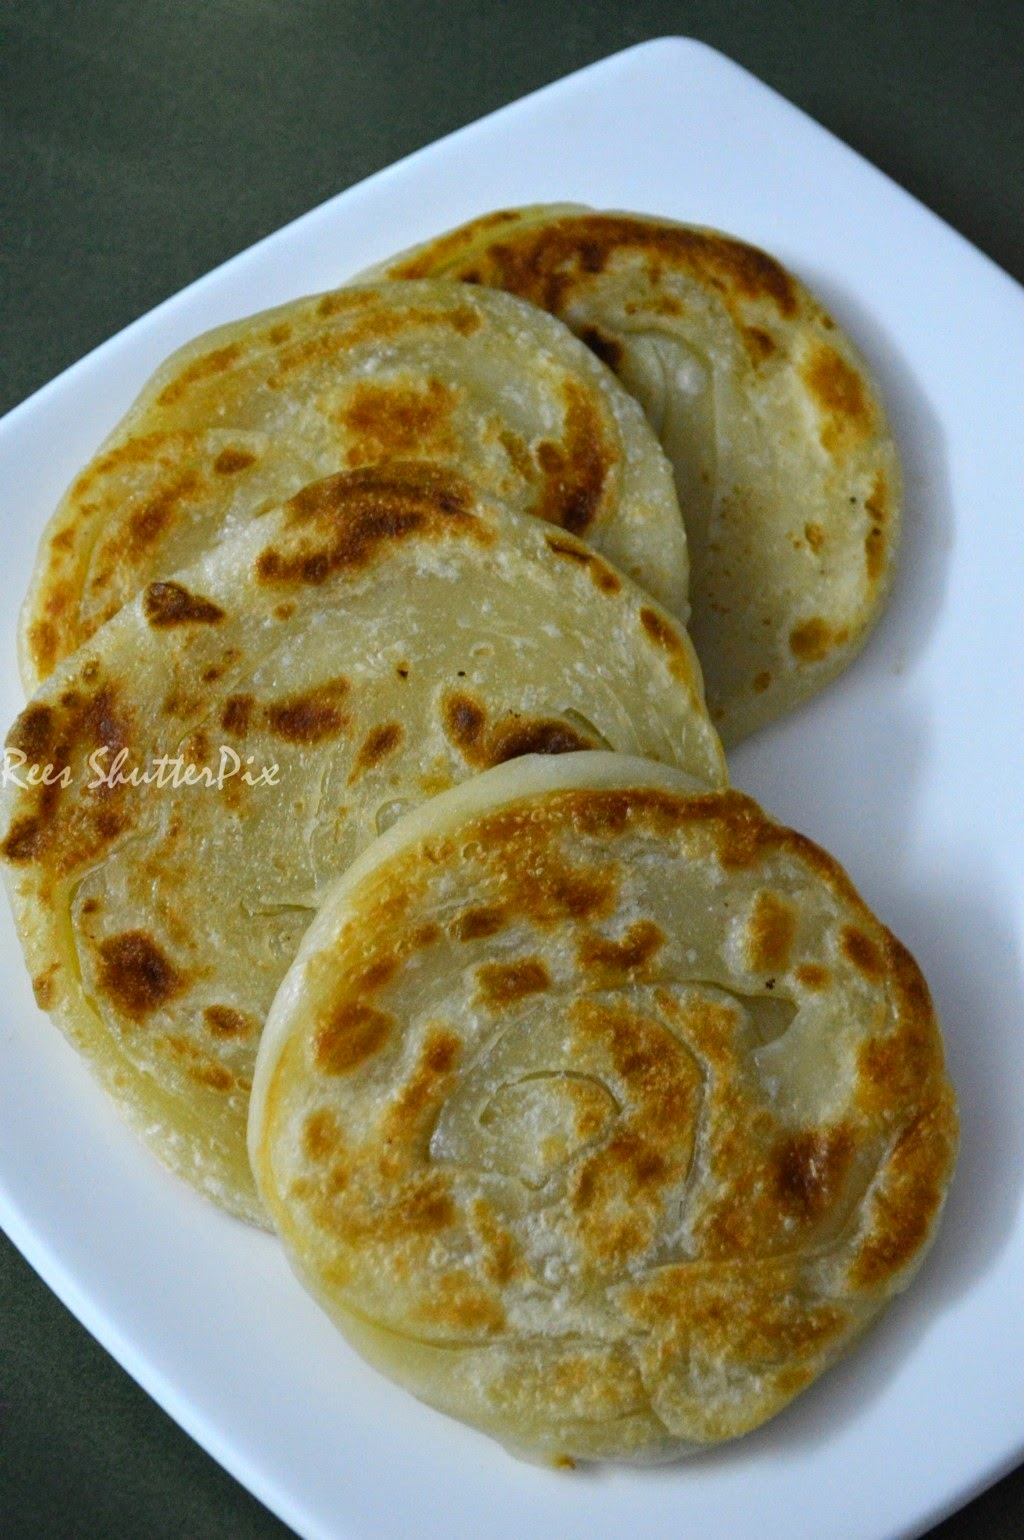 paratha,tamil nadu kerala style, tamil recipe parotta, roadside, easy picture recipe, homemade parotta, veg salna in tamil, easy step by step picture to make parotta at homeparatha,tamil nadu kerala style, tamil recipe parotta, roadside, easy picture recipe, homemade parotta, veg salna in tamil, easy step by step picture to make parotta at home